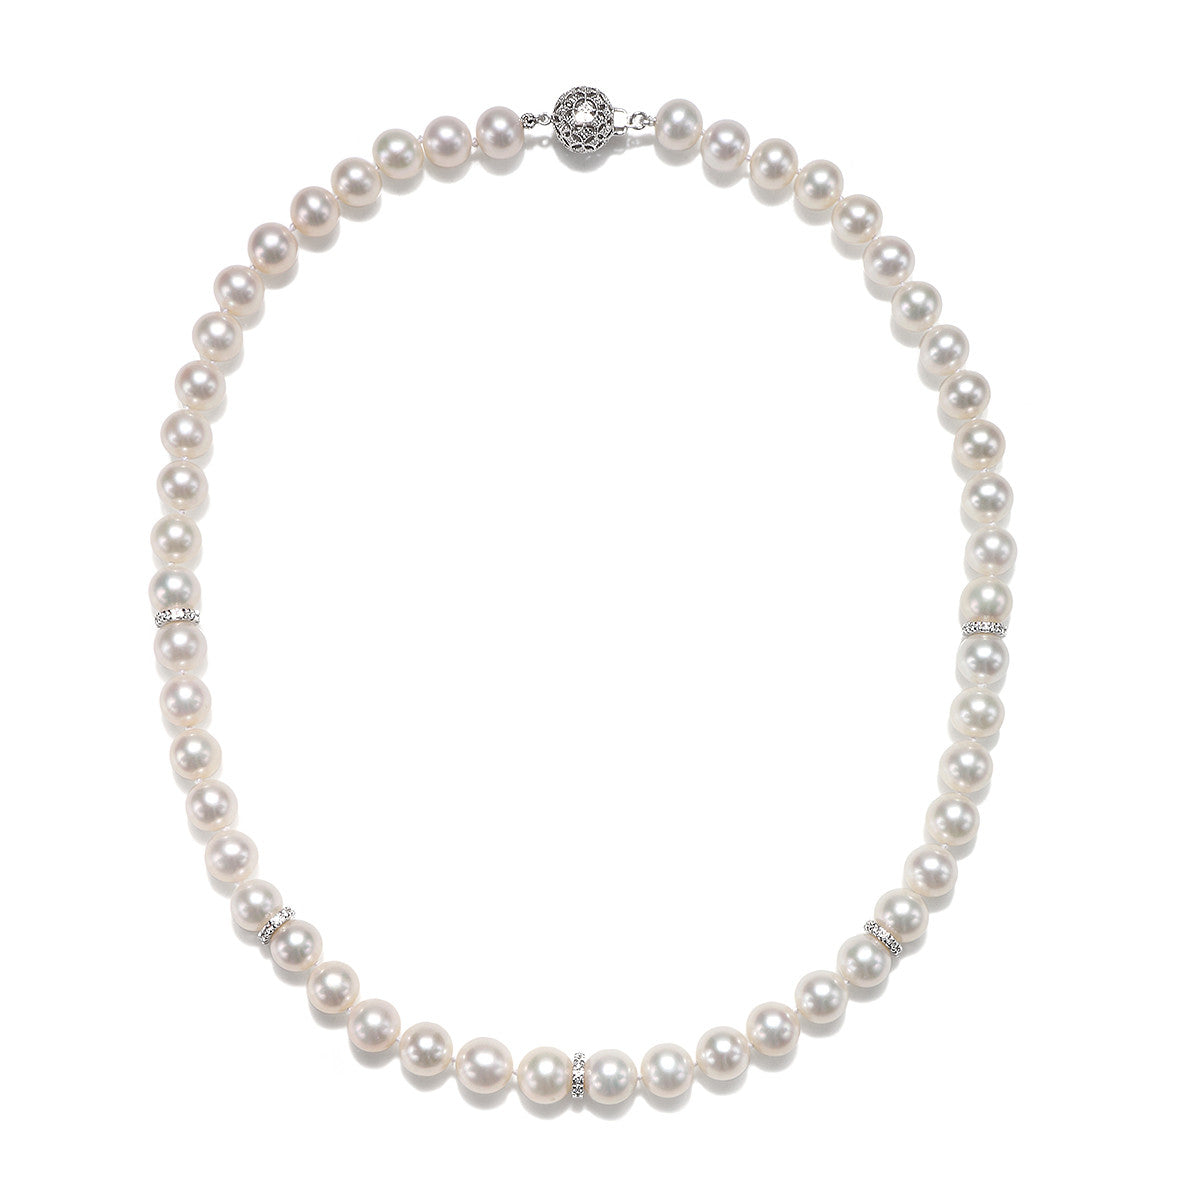 8.5 - 9.5mm Freshwater Cultured Pearl Necklace with 0.55 CTTW Round Brilliant Diamonds - Isaac Westman - 3